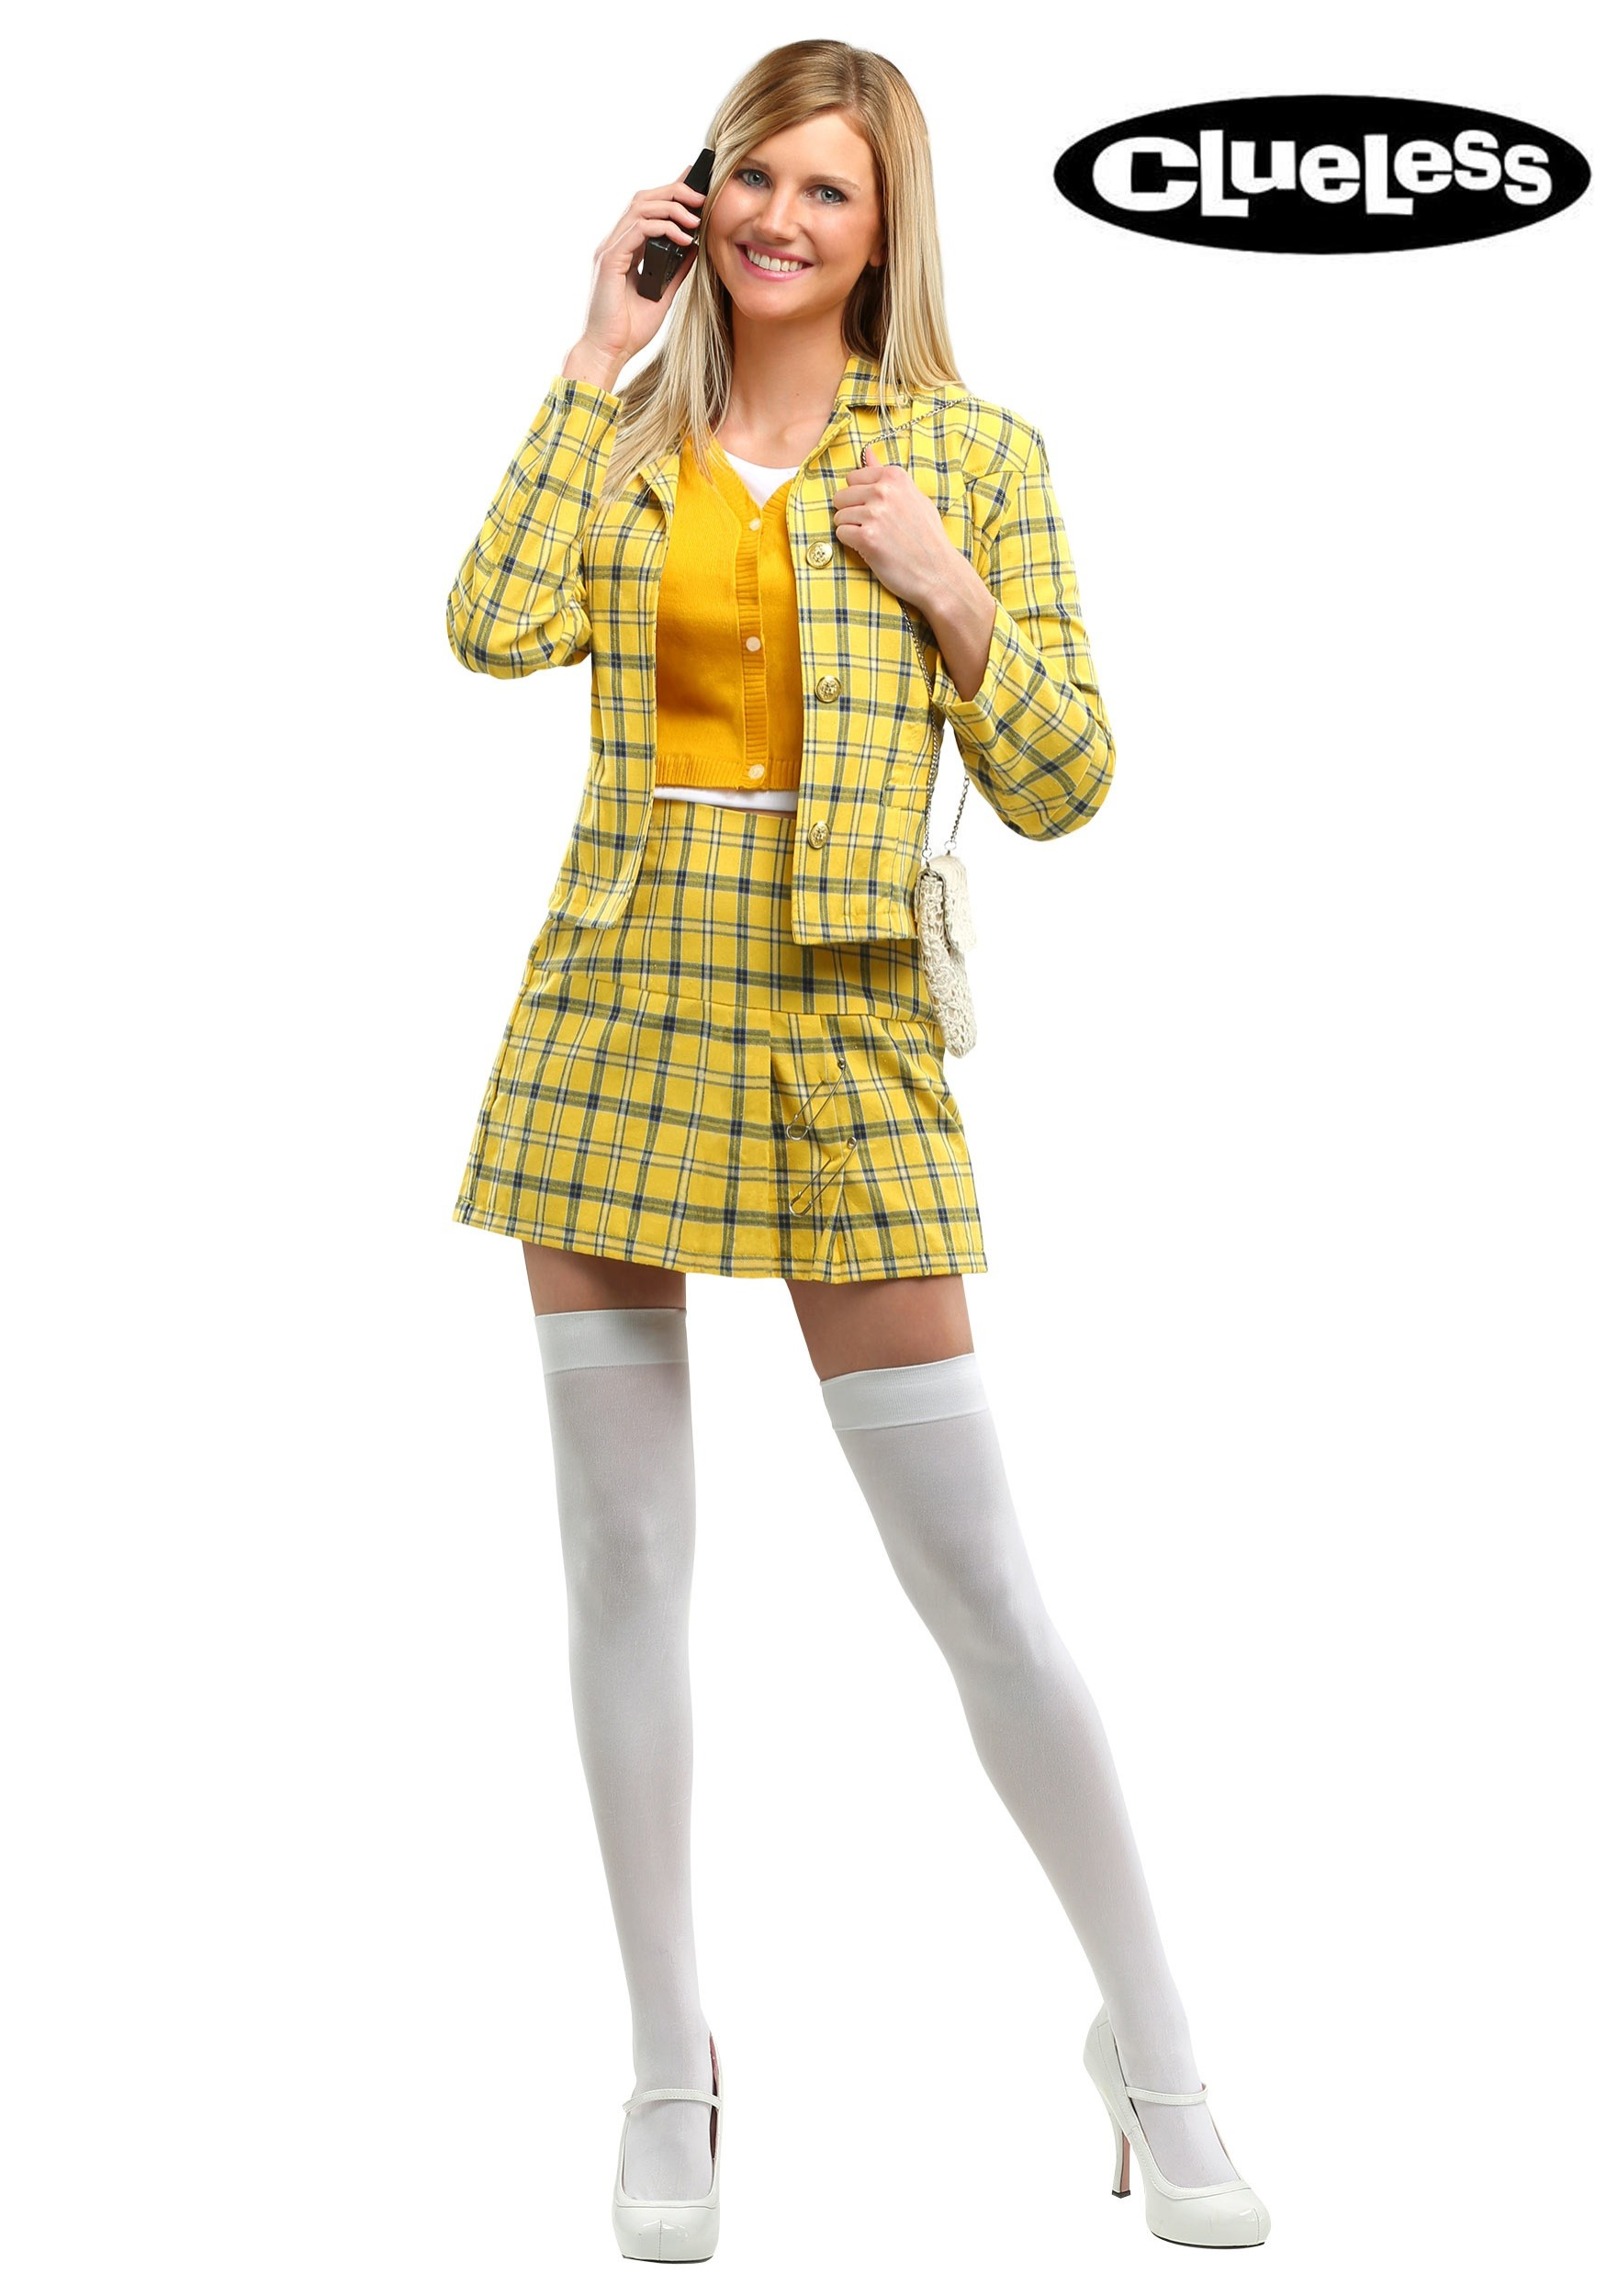 Womenu0027s Clueless Cher Plus Size Costume  sc 1 st  Fun.com & Clueless Cher Plus Size Costume for Women